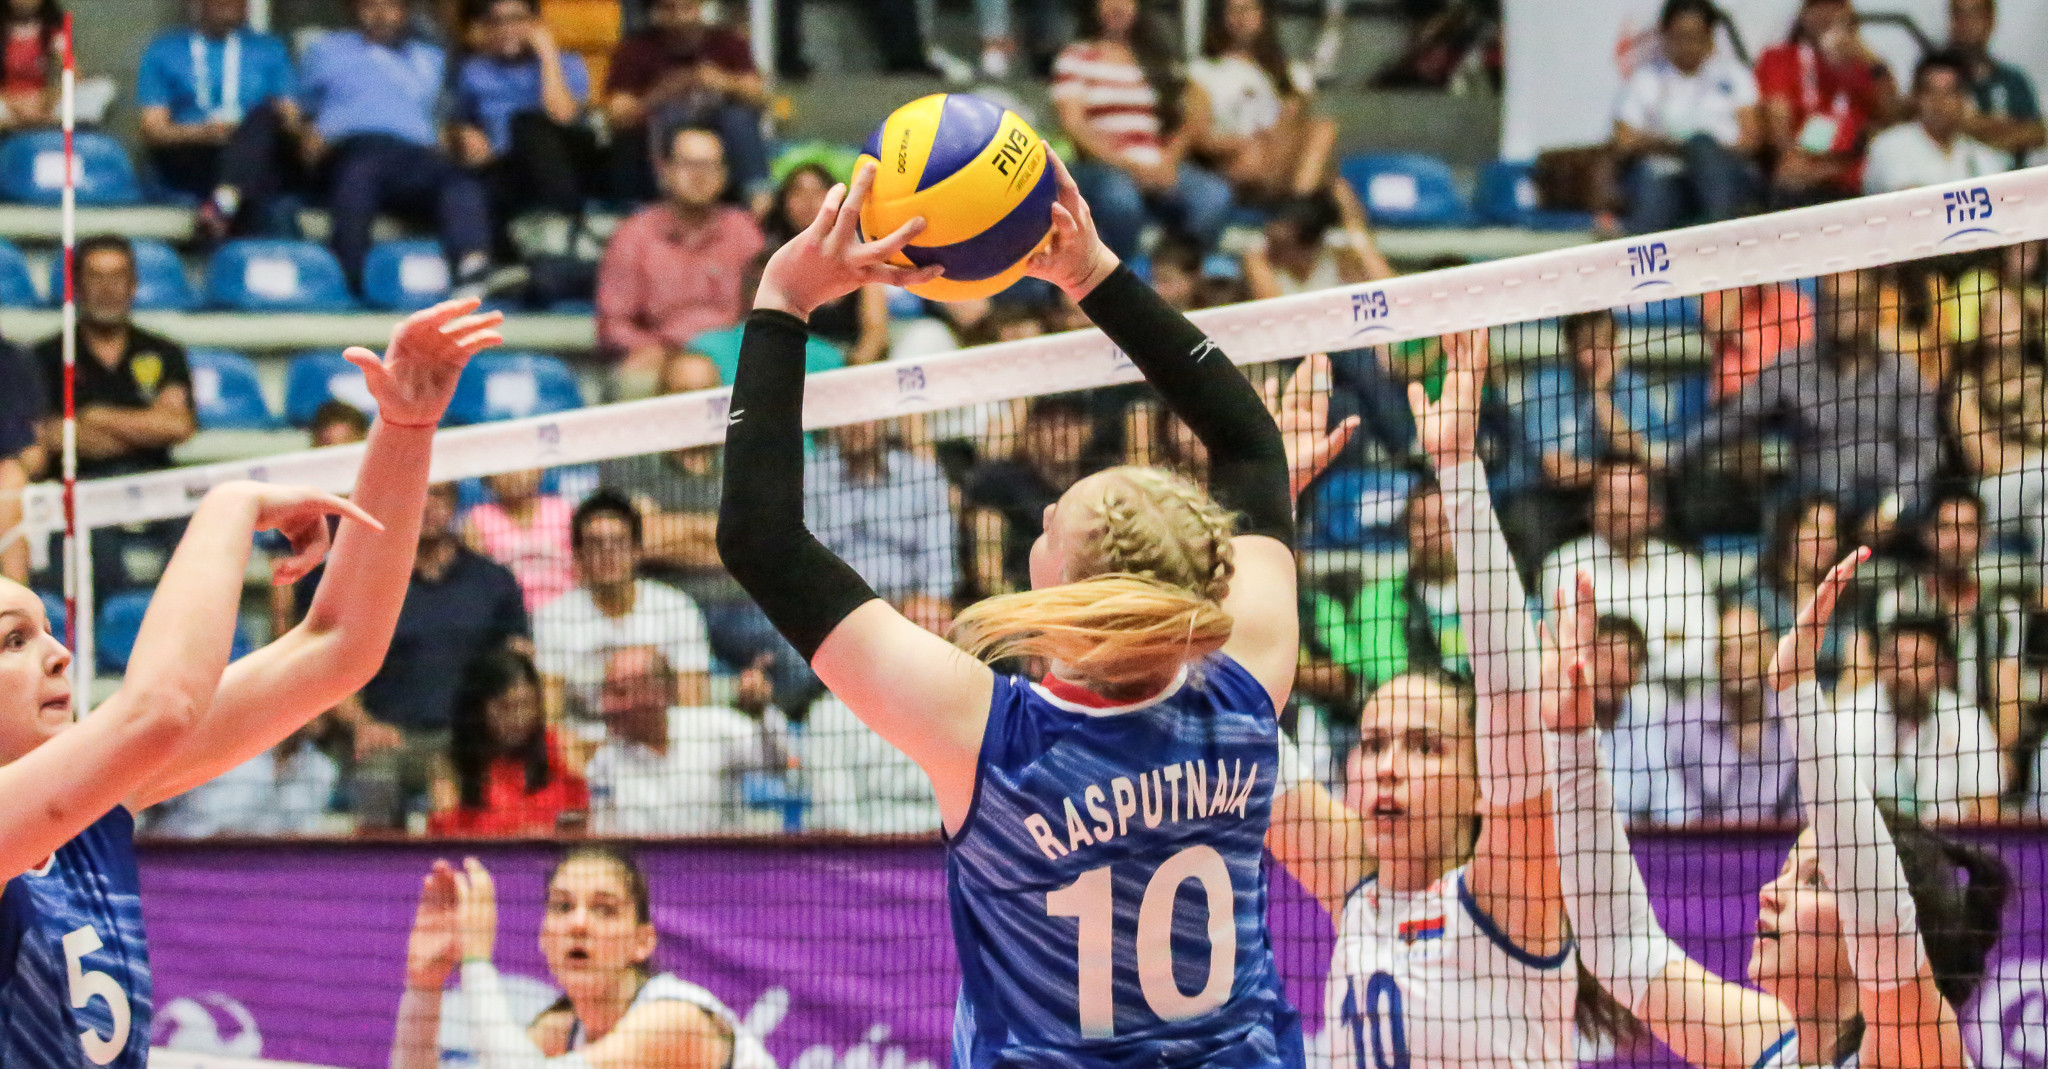 Russia recorded a second win from as many outings ©FIVB